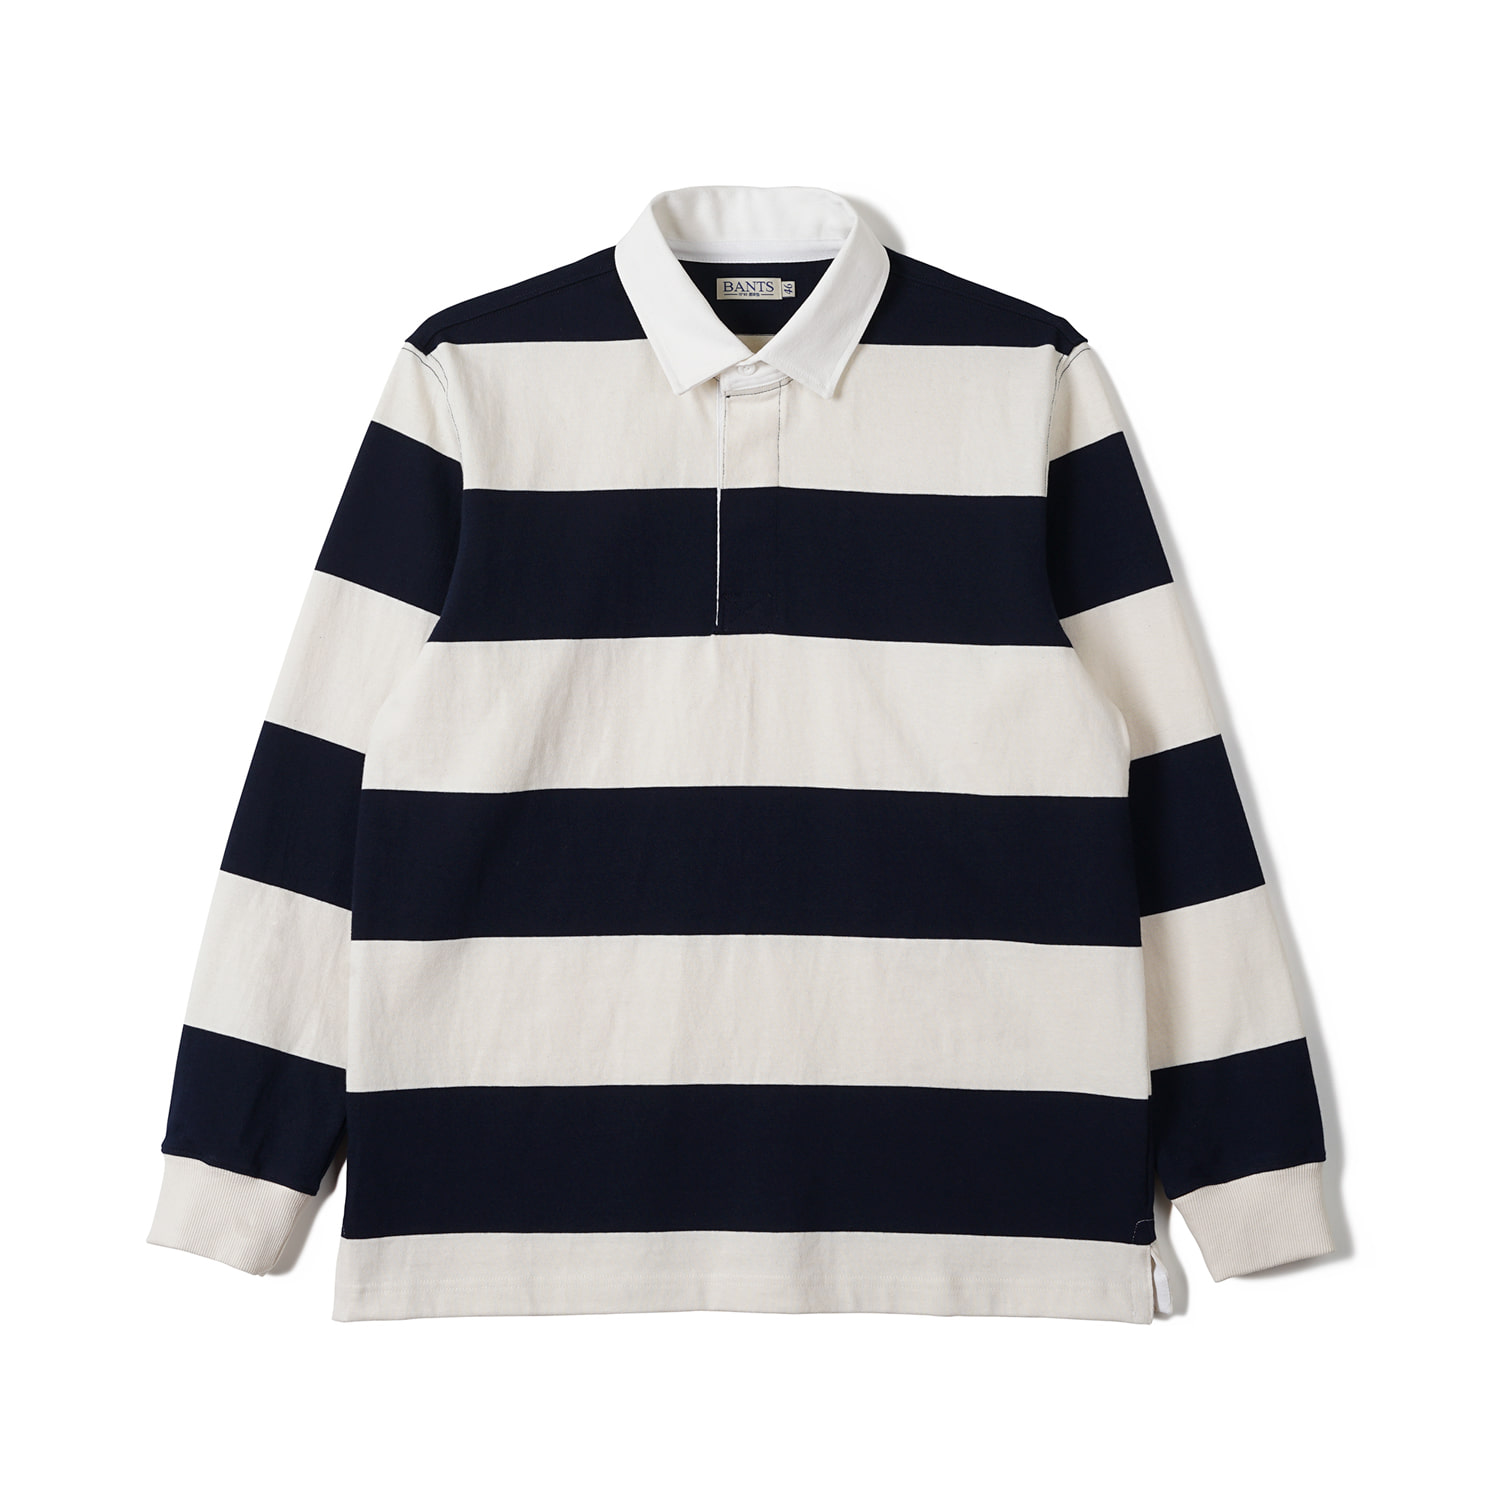 FLB Stripe Cotton Rugby T-shirt Navy x Off WhiteBANTS(반츠)